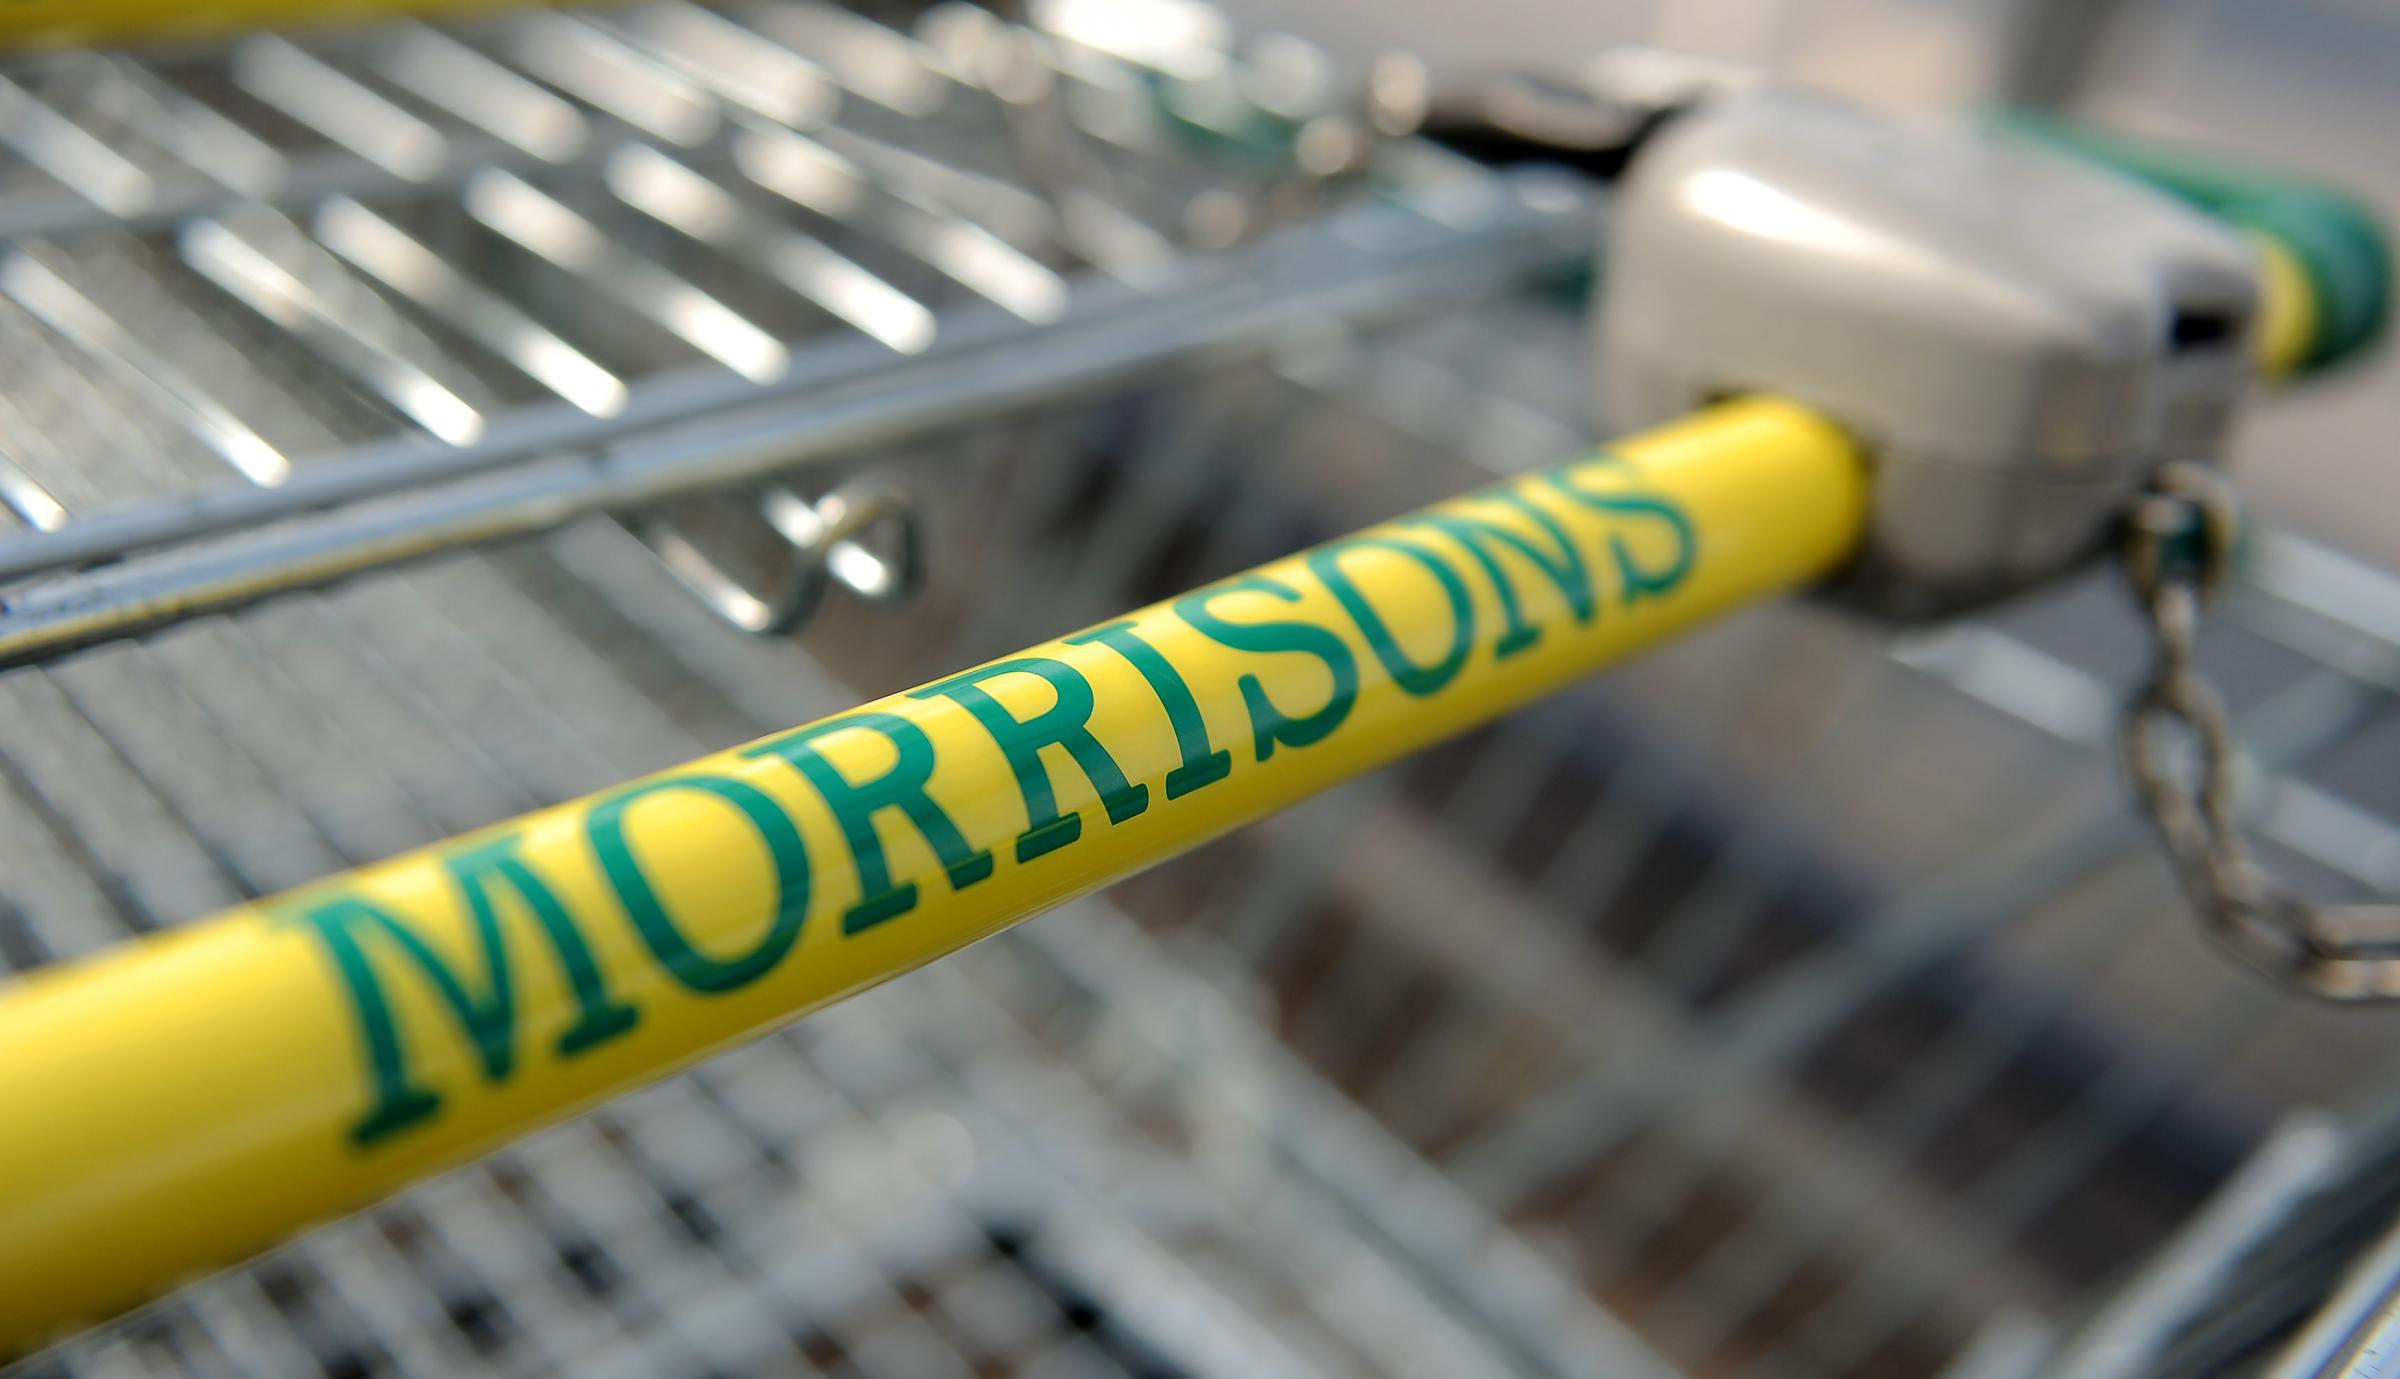 General view of signage for Morrisons supermarket on a trolley handle (7244394)